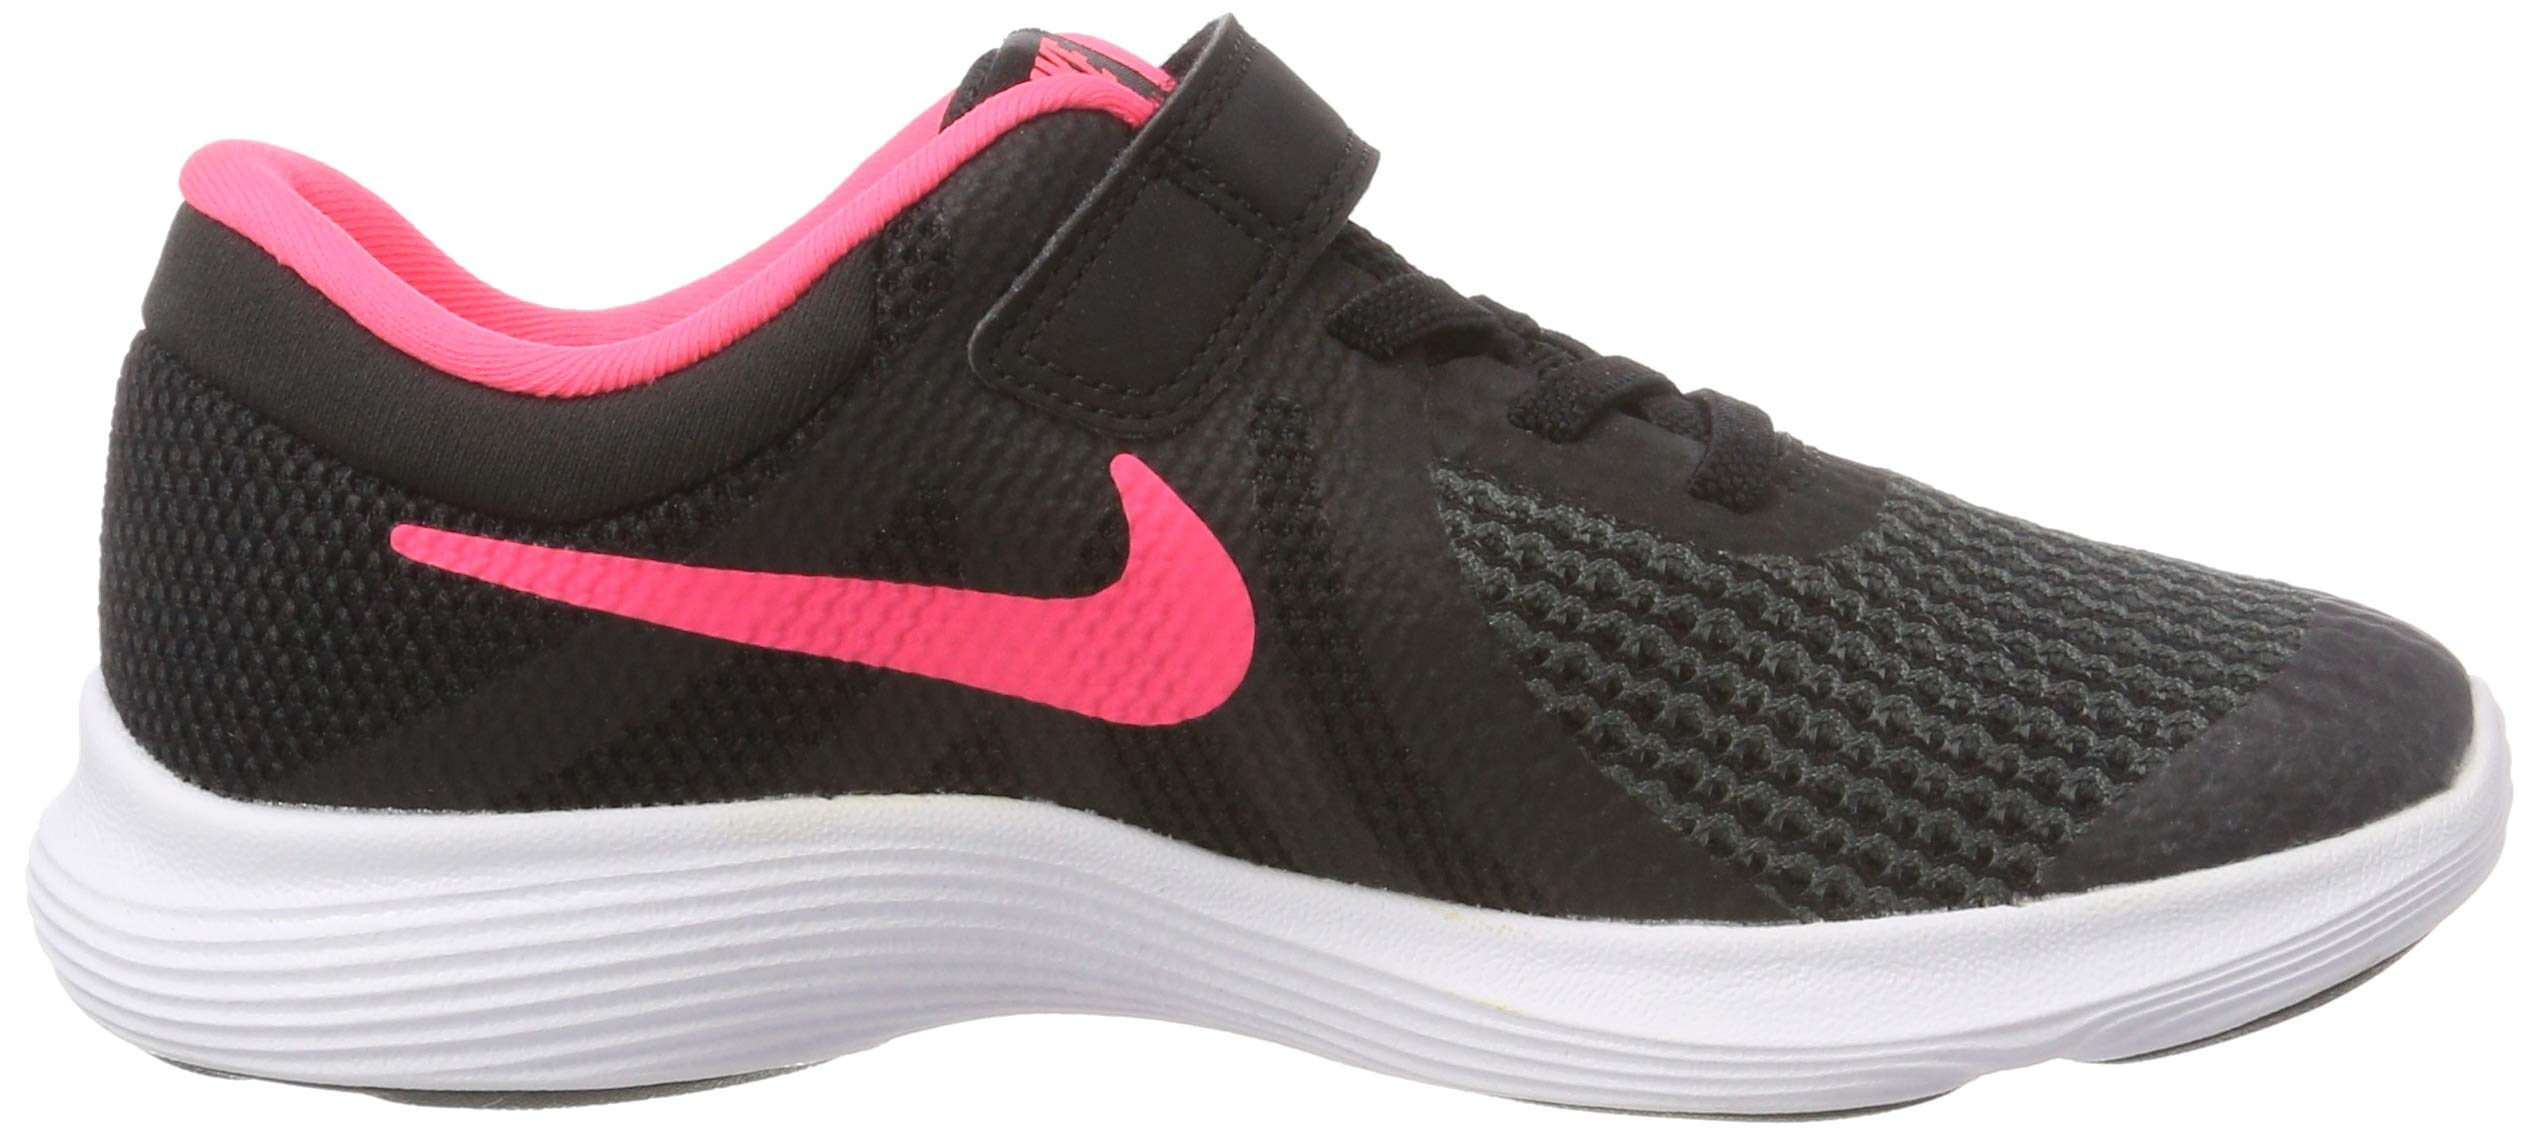 Nike Girls' Revolution 4 (PSV) Running Shoe, Black/Racer Pink - White, 12C Regular US Little Kid by Nike (Image #6)